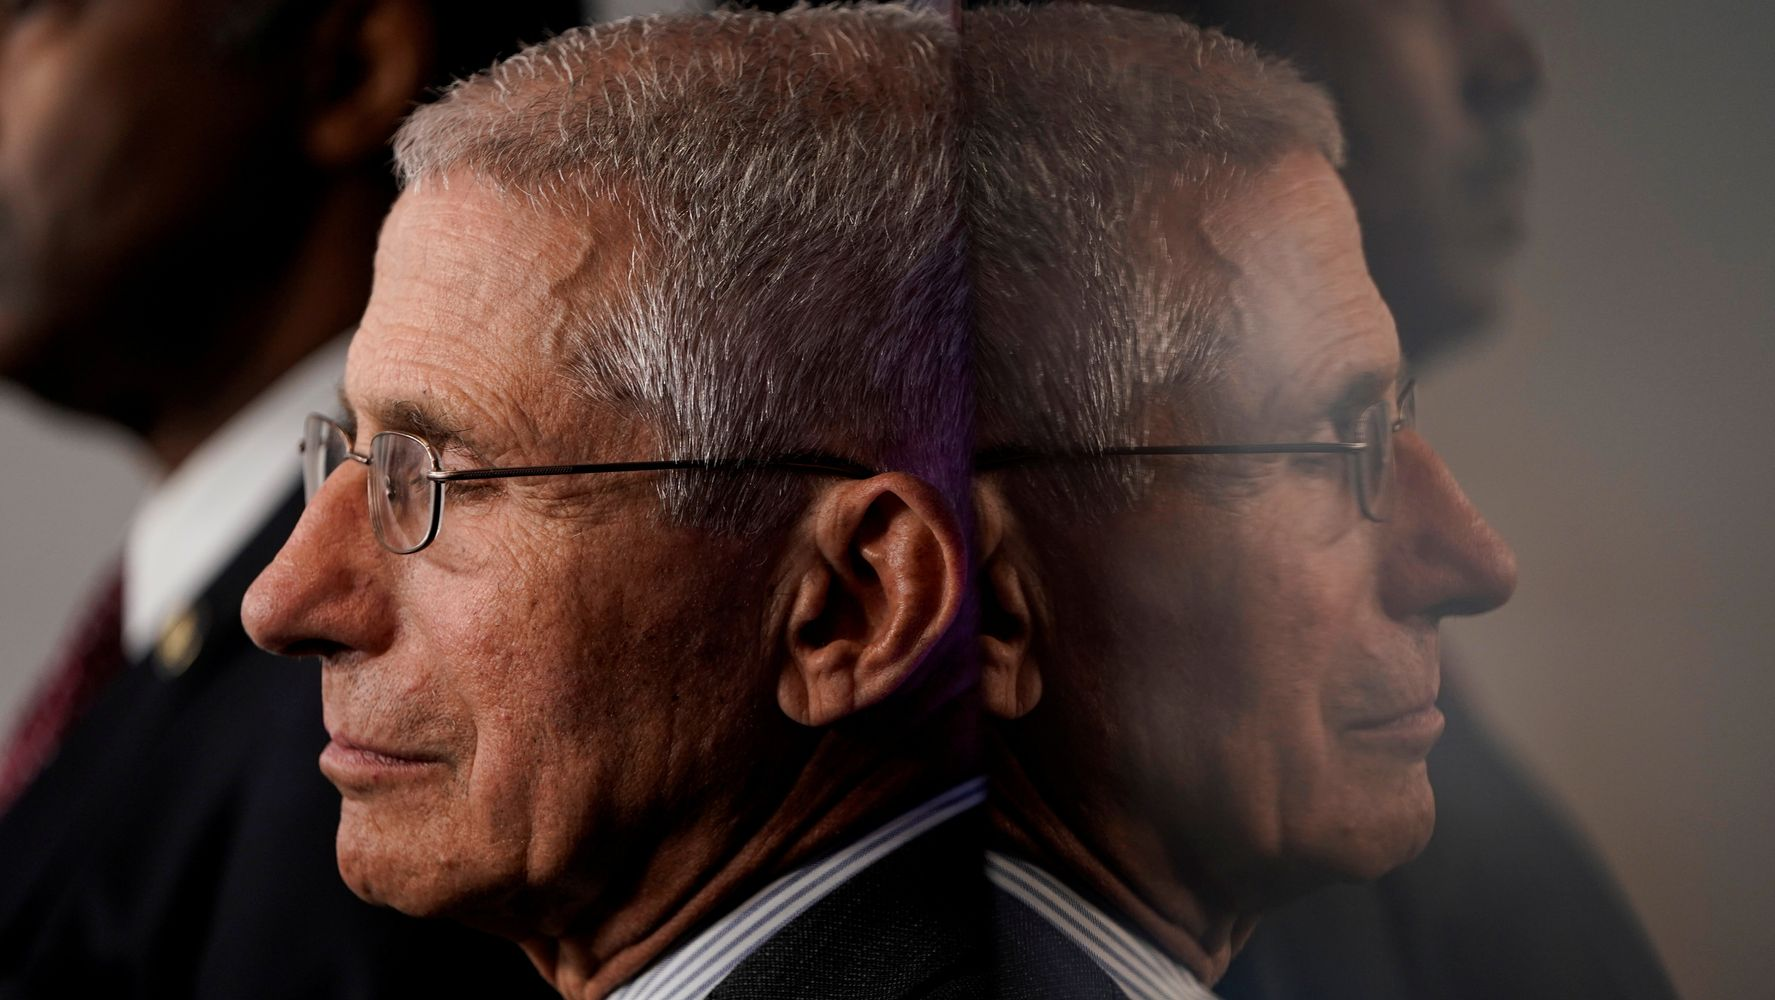 A Day In The Life Of Dr. Anthony Fauci